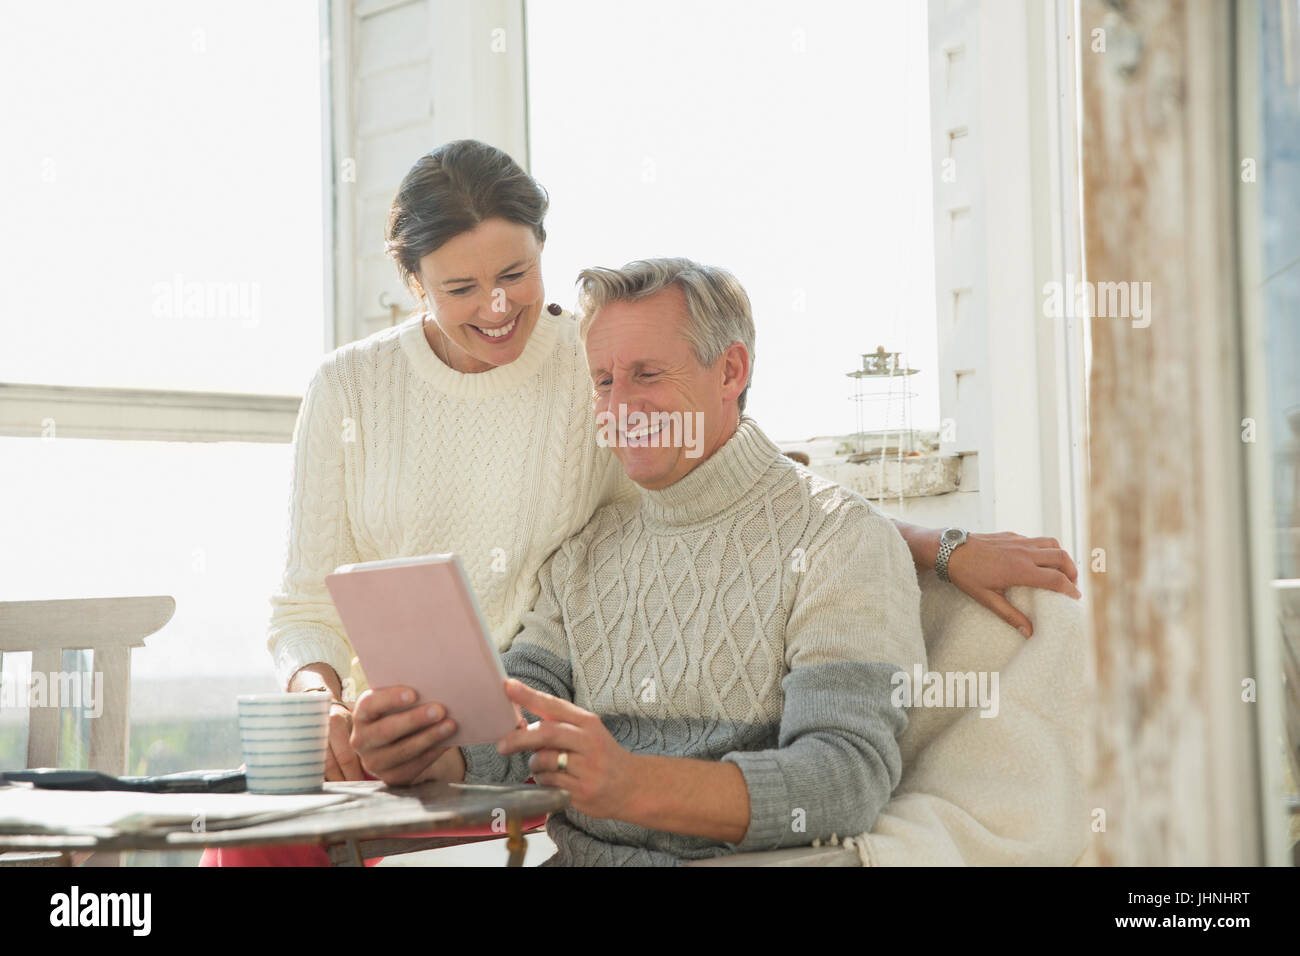 Smiling mature couple using digital tablet at table on sunny sun porch - Stock Image